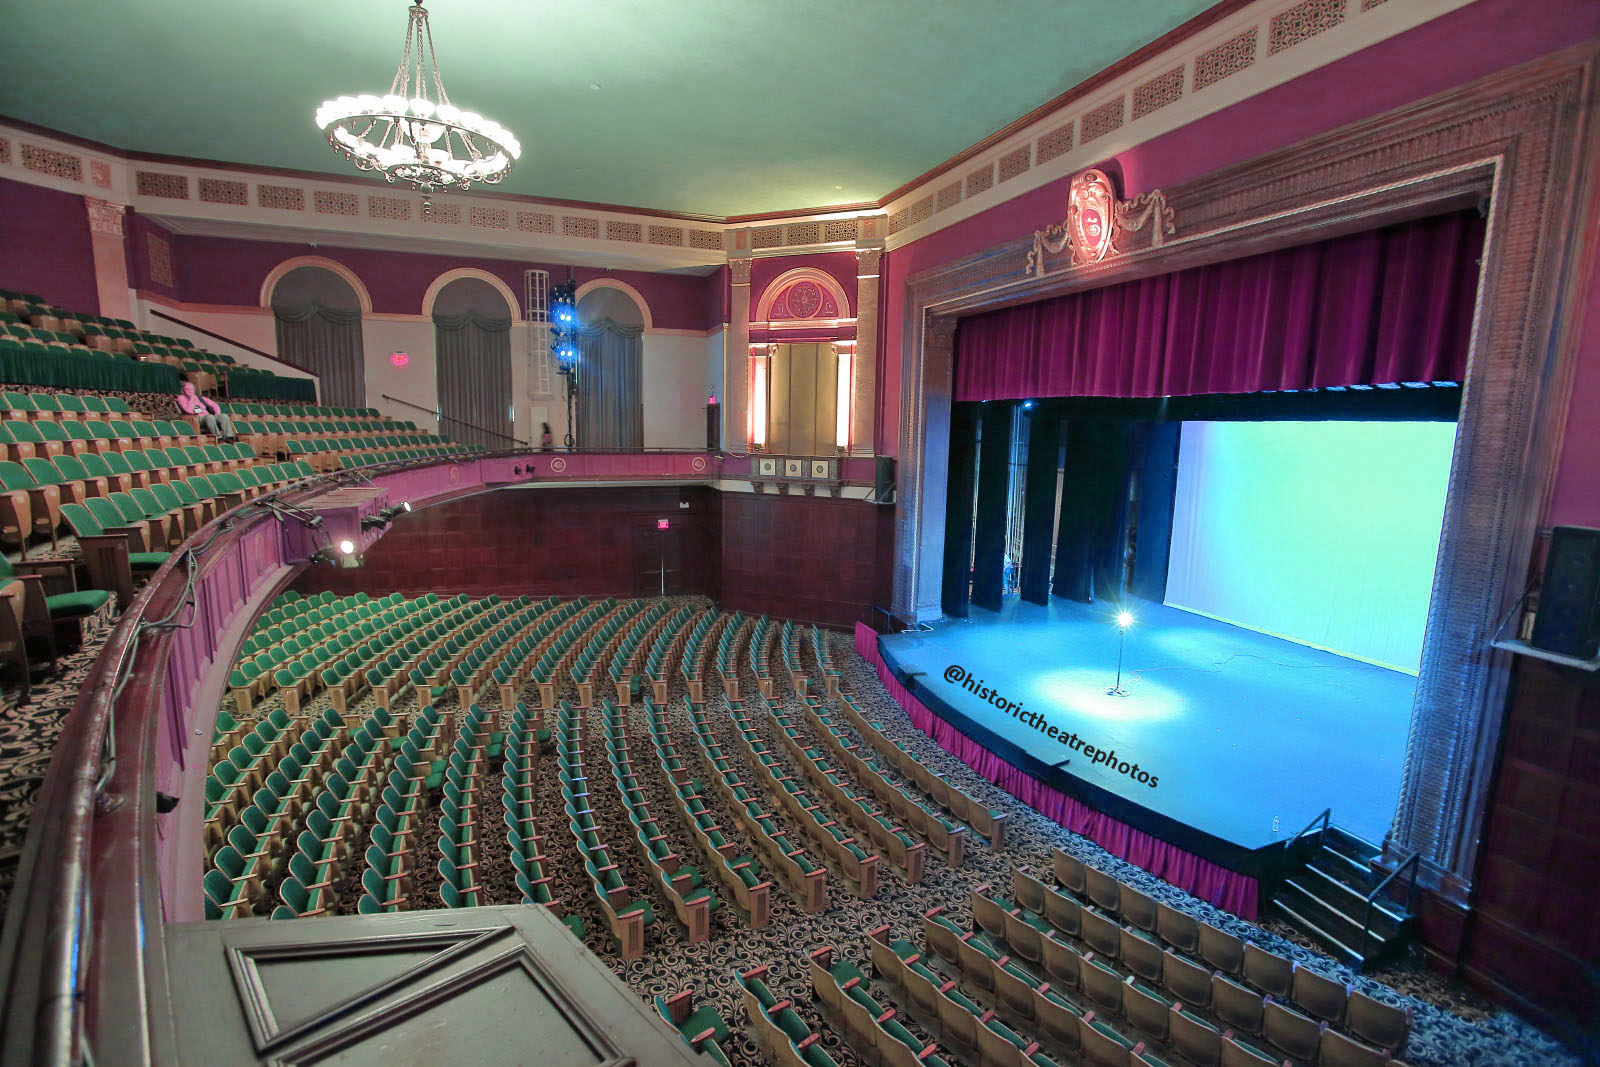 Wilshire Ebell Theatre Historic Theatre Photography